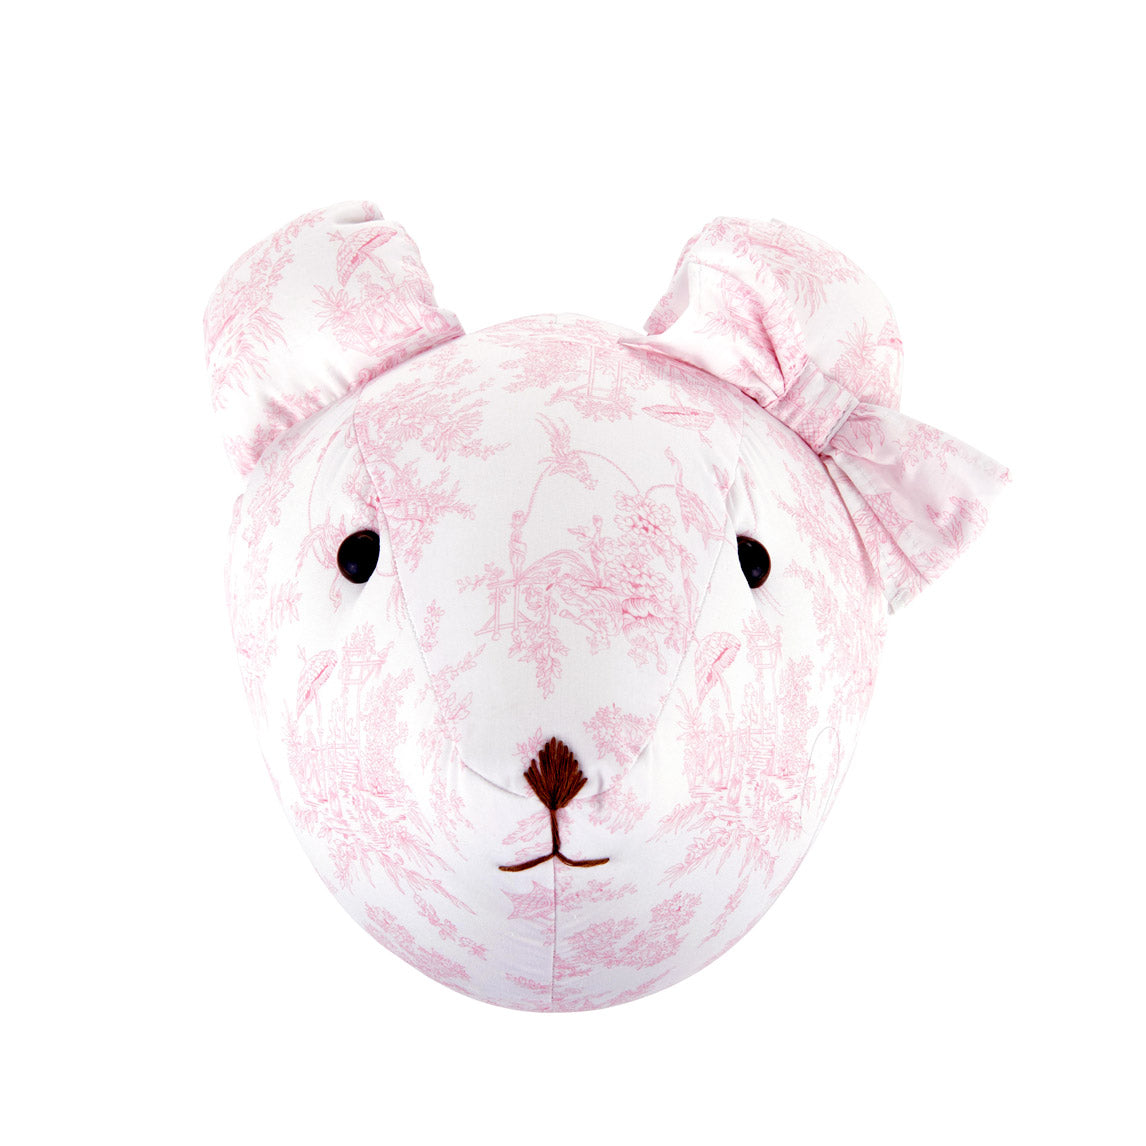 Theophile & Patachou Bear Trophy Head for Children'S Room - Sweet Pink